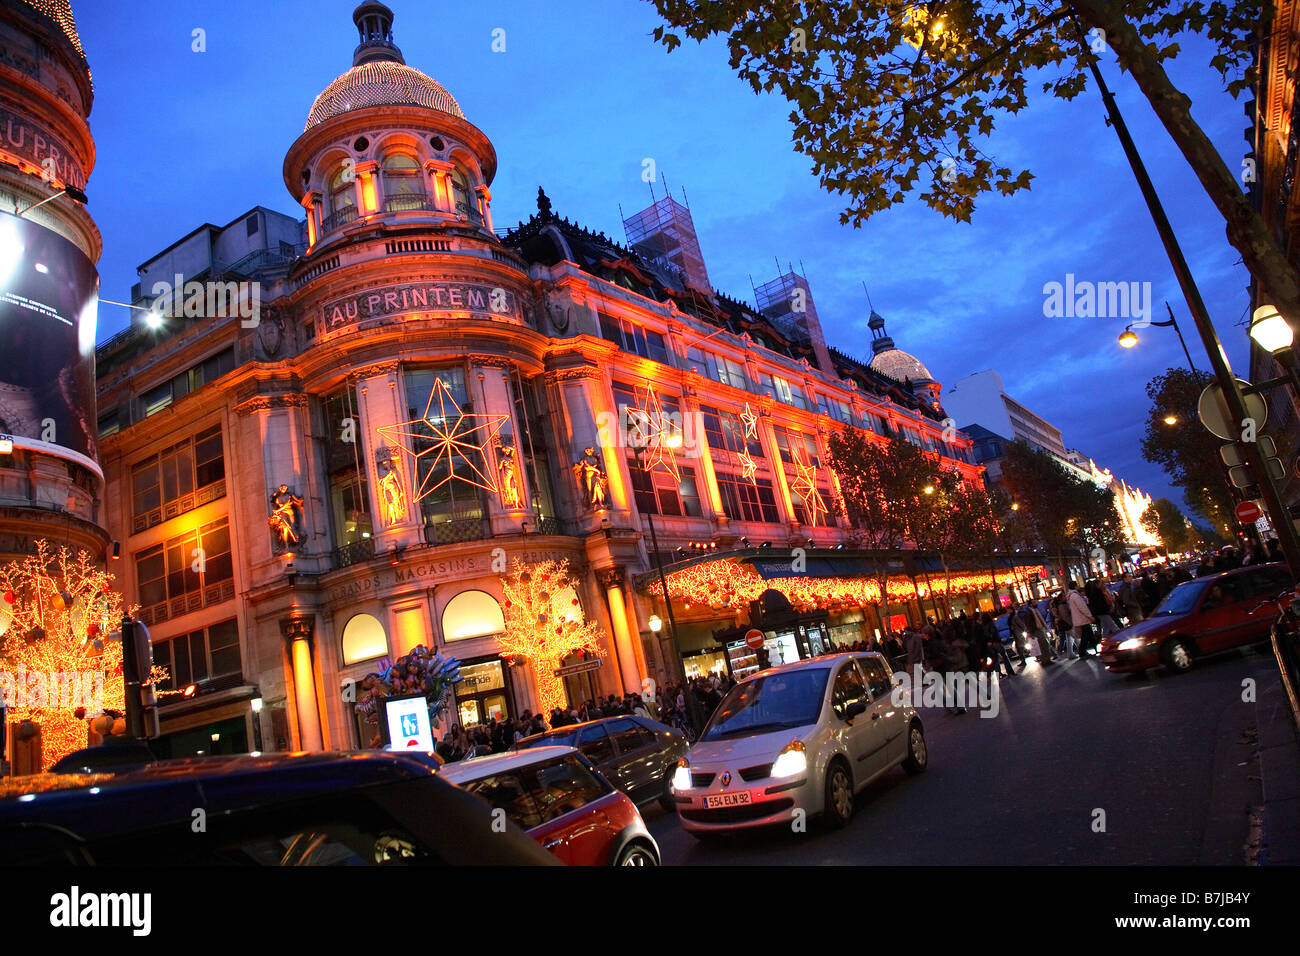 paris france printemps department store on boulevard haussmann at stock photo 21916859 alamy. Black Bedroom Furniture Sets. Home Design Ideas